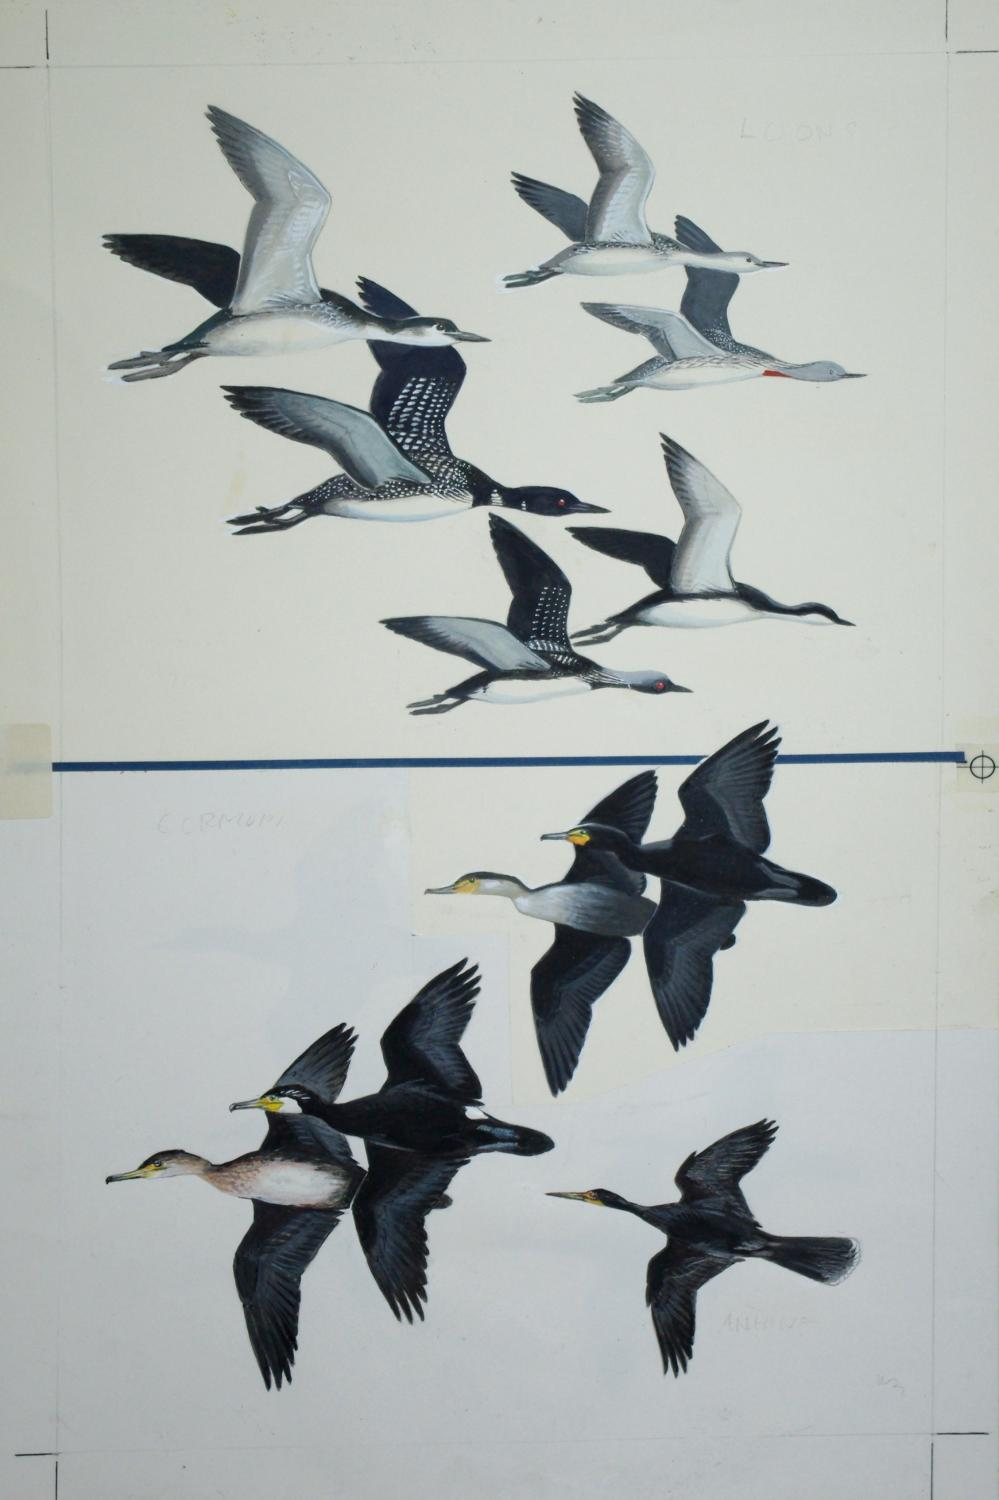 Loons, Cormorants in Flight: Roger Tory Peterson